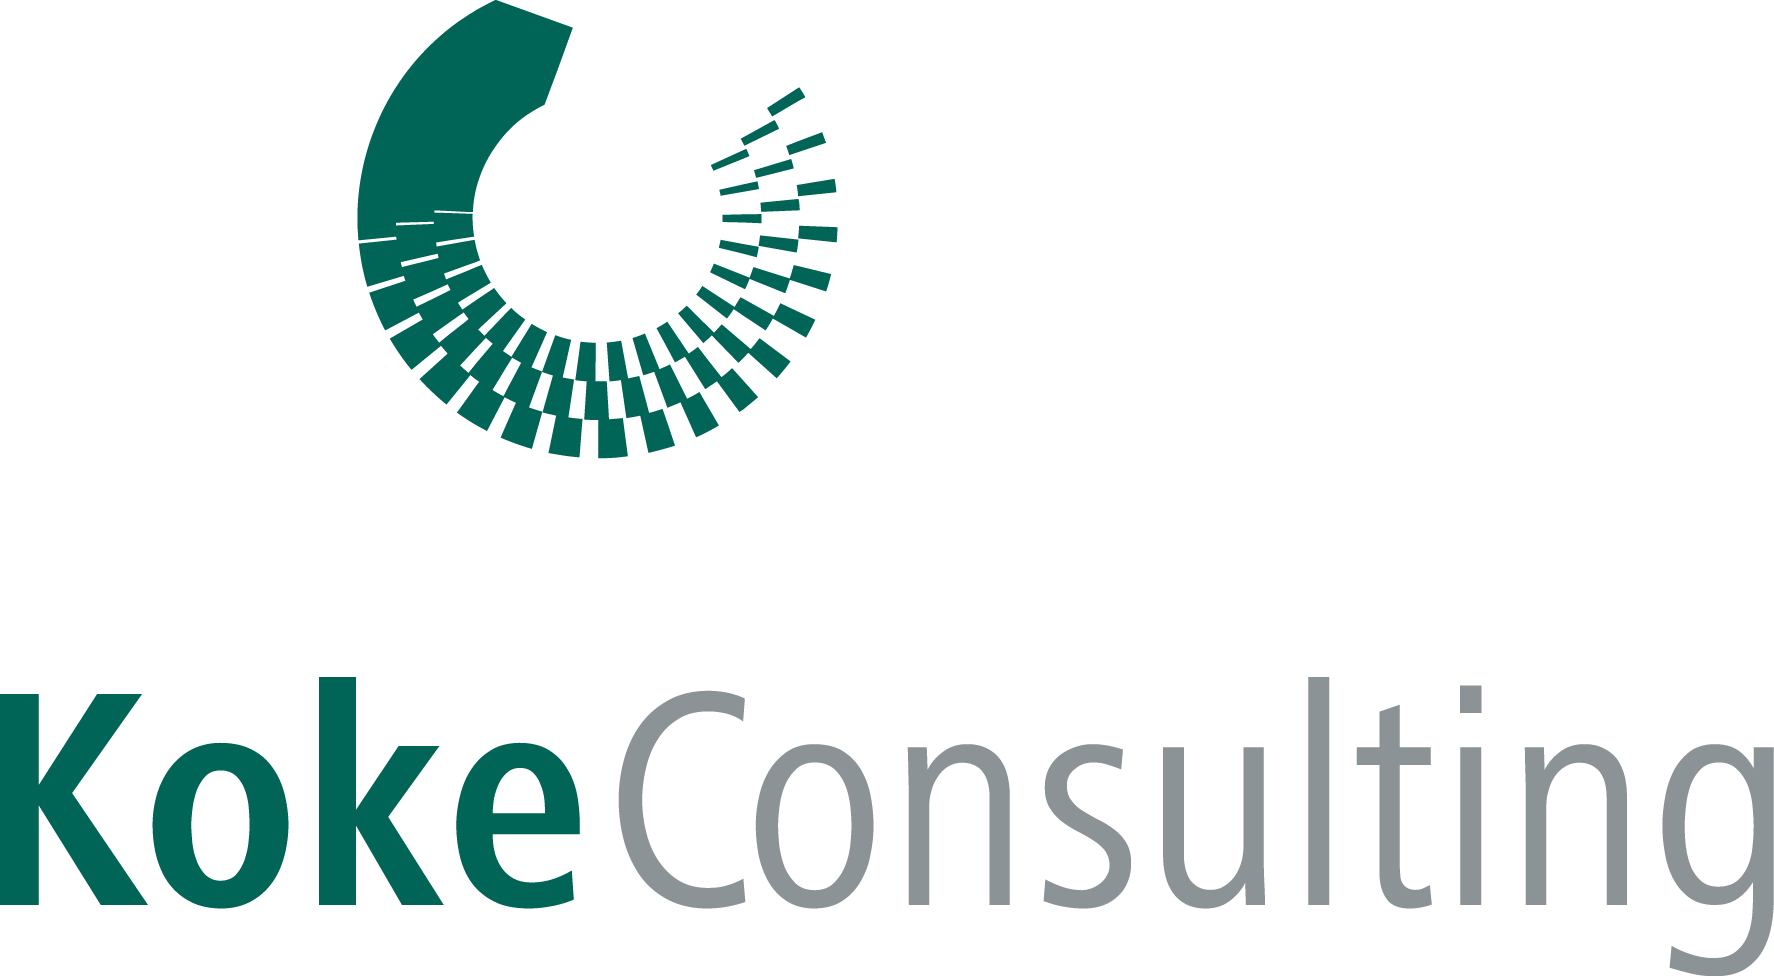 Koke Consulting